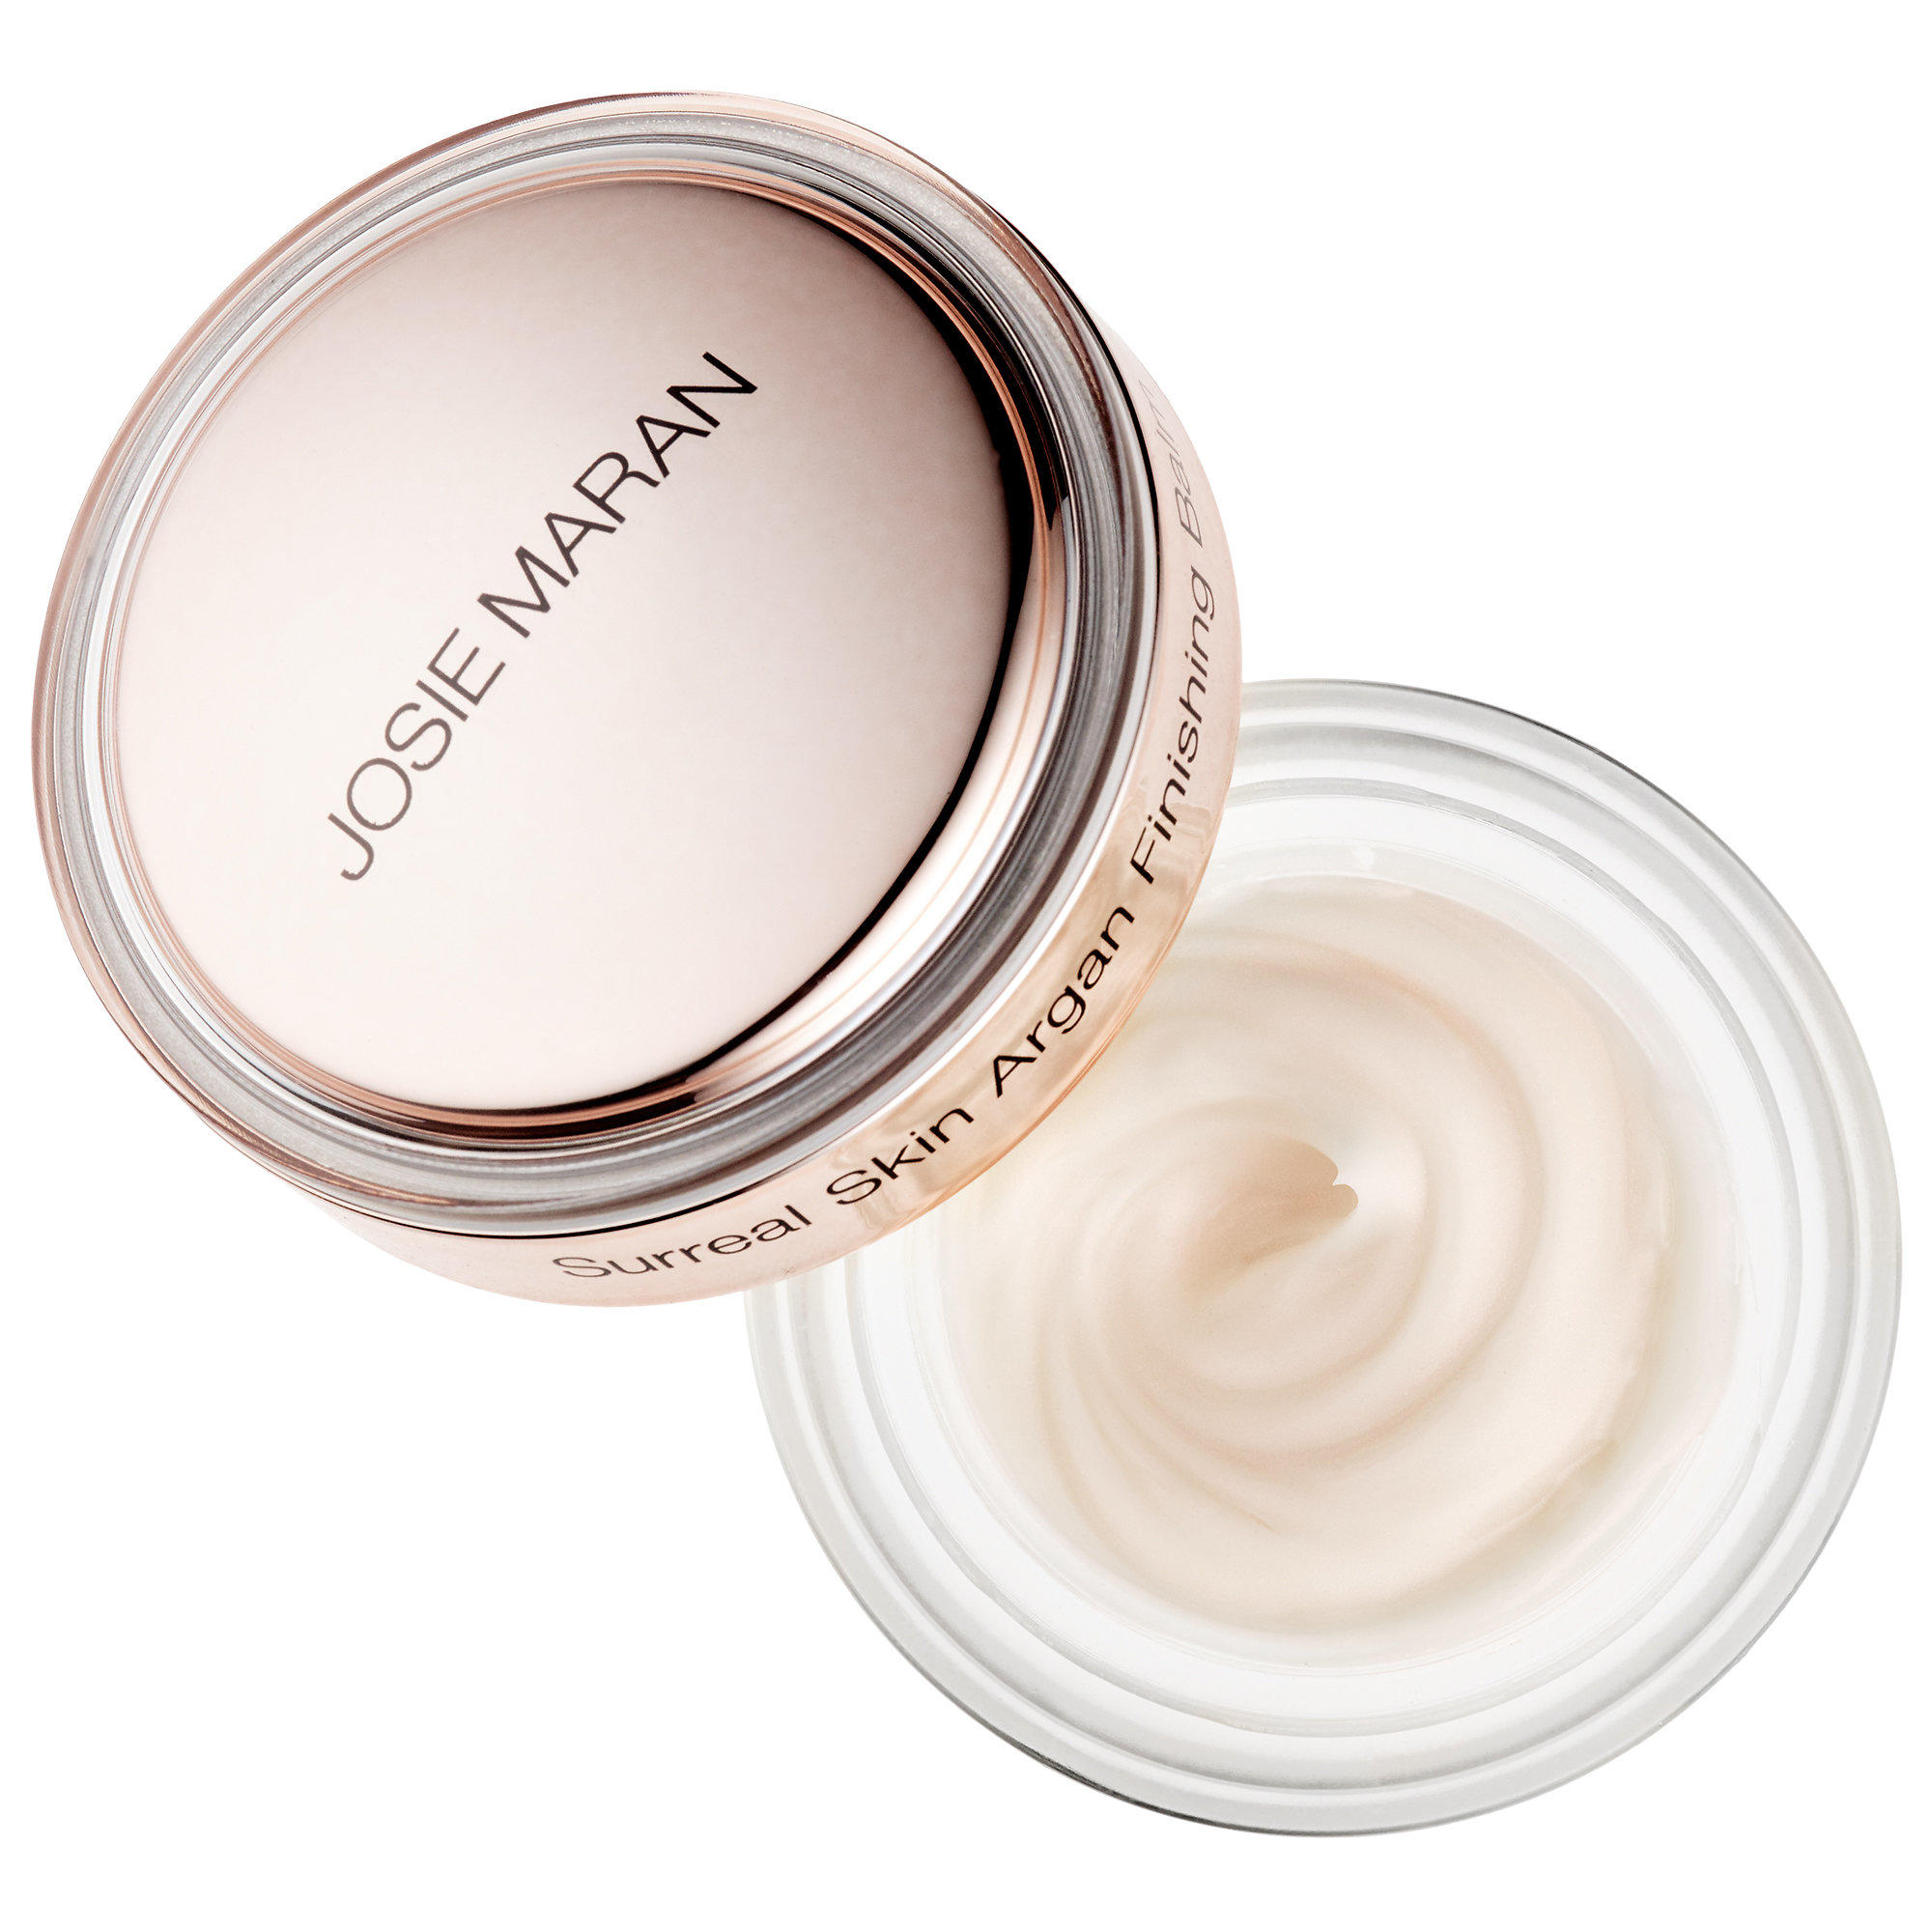 Josie Maran Surreal Skin Argan Finishing Balm Etheric